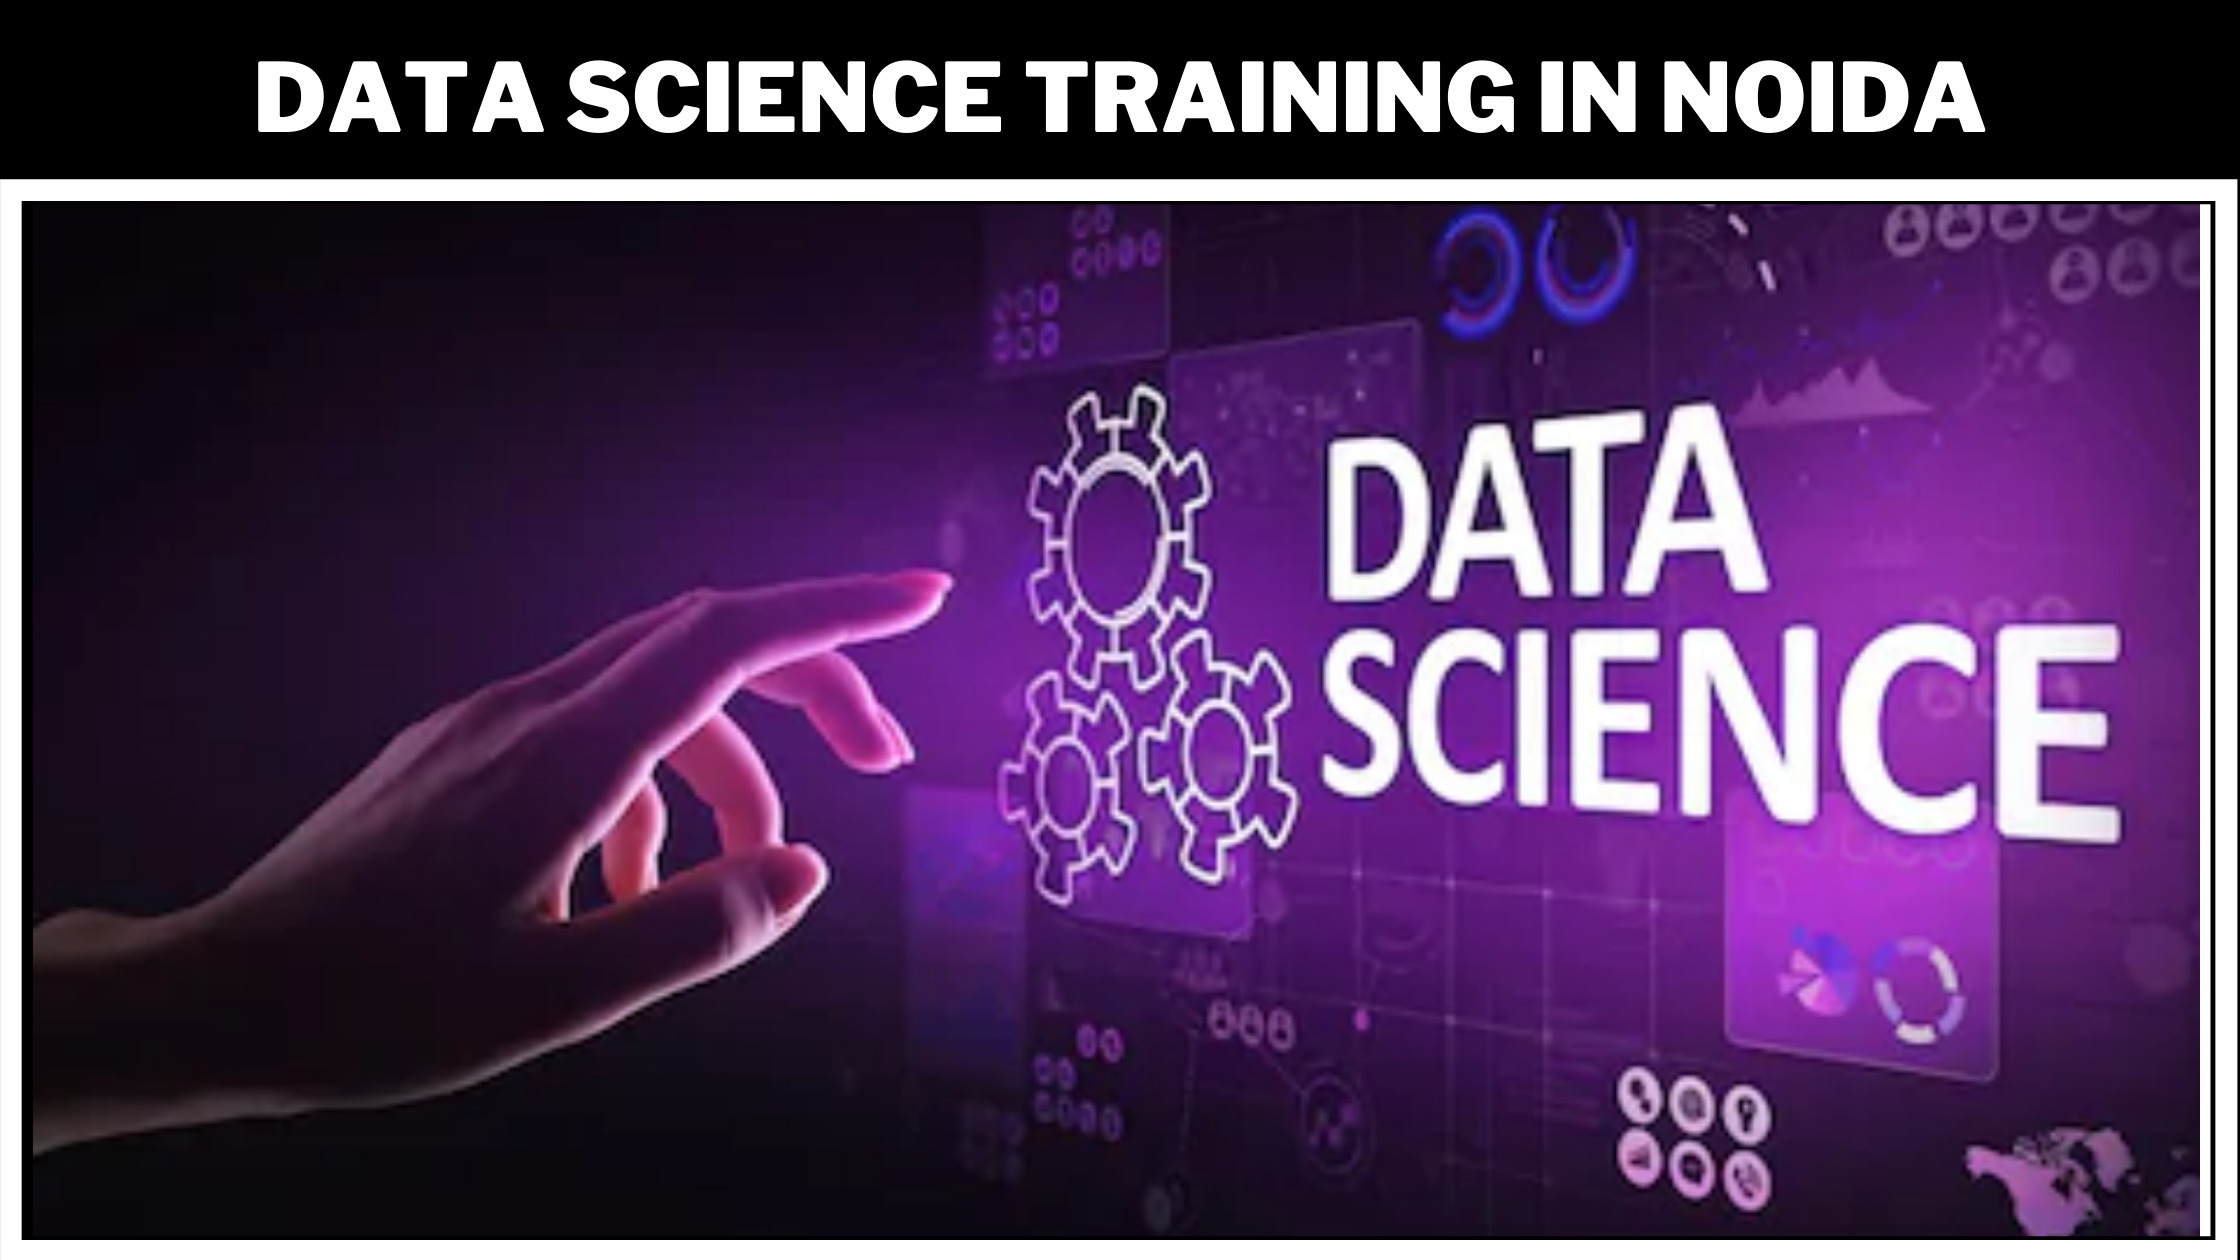 data_science_training_in_noida-background.jpeg